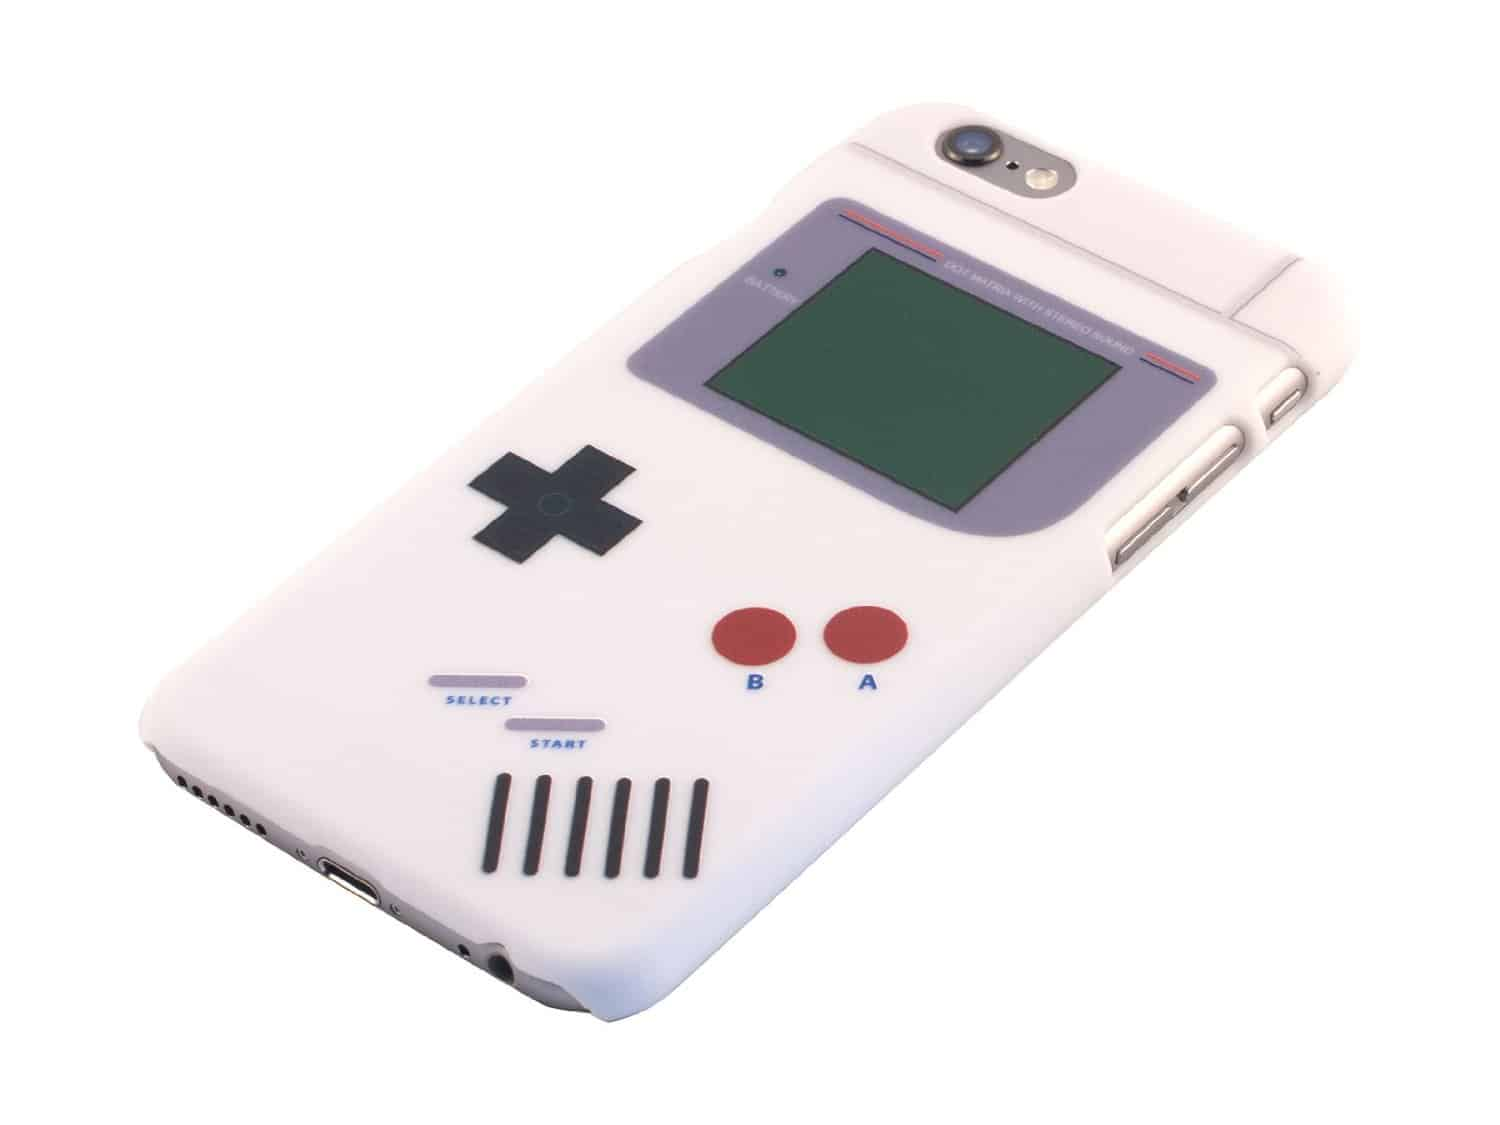 Nintendo Game Boy iPhone Case by Rocketcases Cool Gift Idea for Gamer